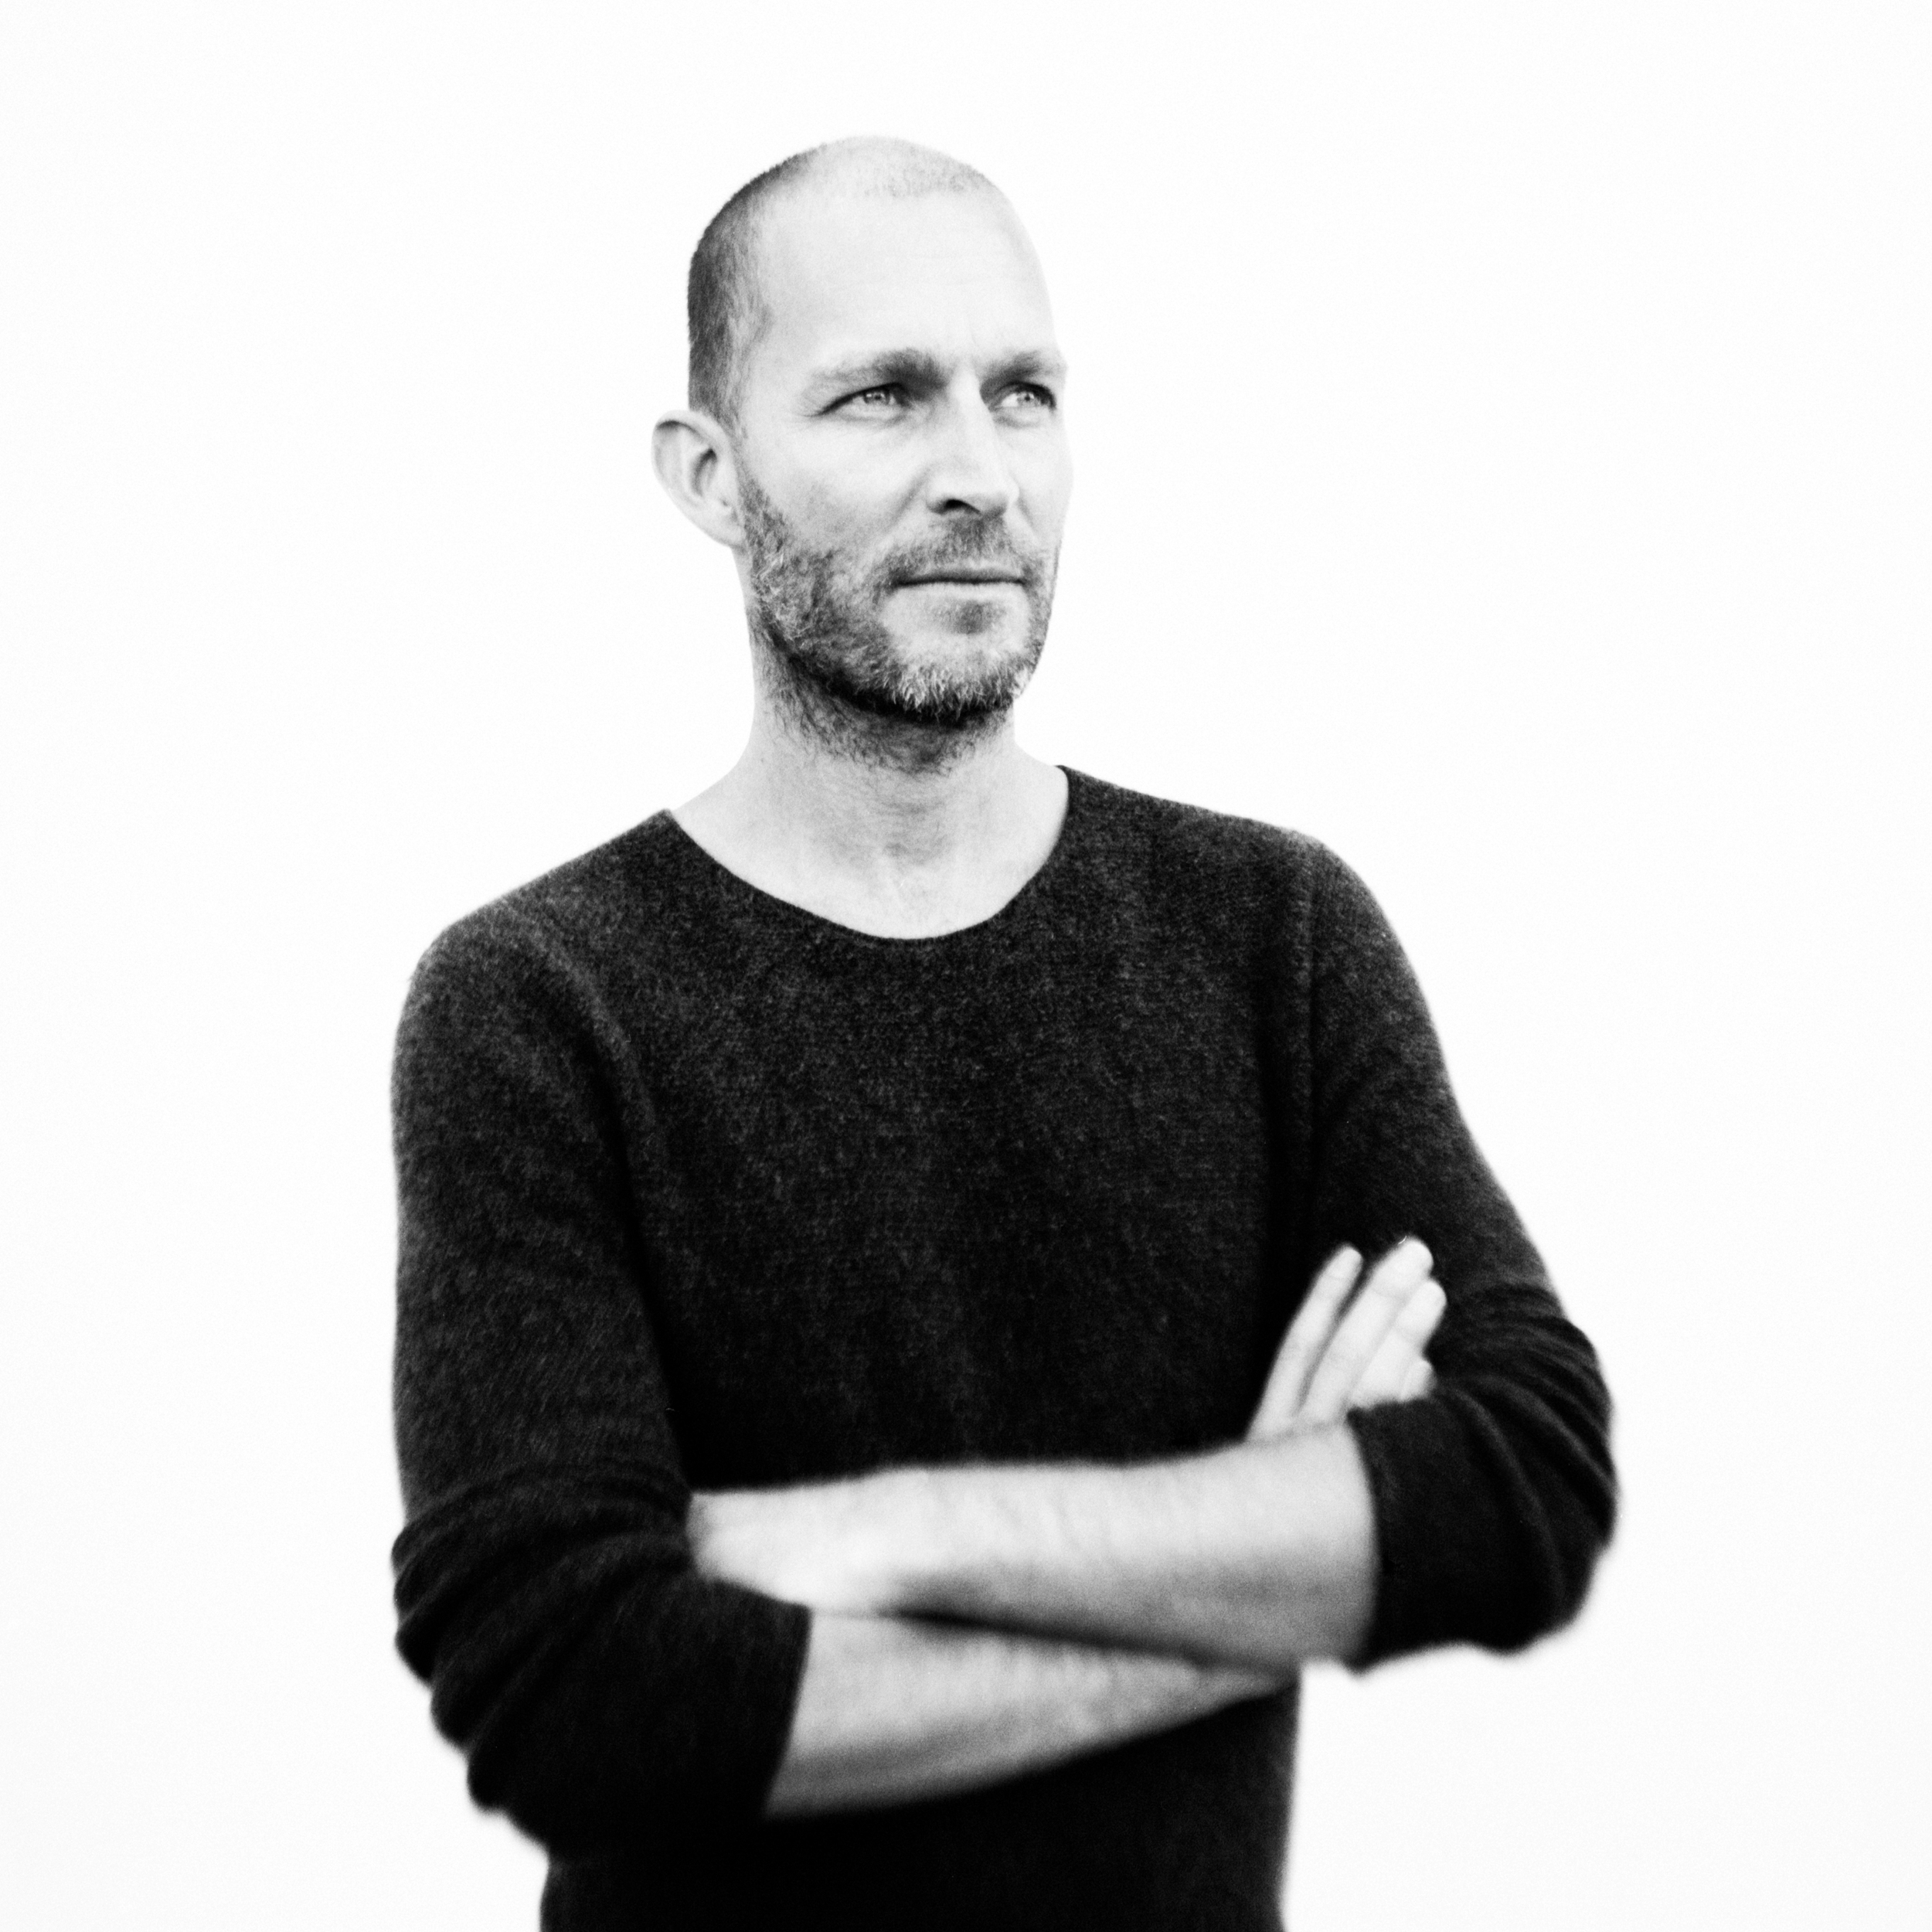 SANDER VAN MAARSCHALKERWEERD    FOUNDER / MD - SIZZER AMSTERDAM   Sander van Maarschalkerweerd founded Sizzer Amsterdam in 2005. His primary goal was to bring some of the music world's finest talent to the ad world's fingertips.  With a network of established composers and offbeat artists Sizzer Amsterdam creates music for moving images. Sander's passion for music combined with a knack for spotting exciting new talent has resulted in a steady flow of inspiring campaigns. Under Sander's leadership Sizzer Amsterdam has become a well established award-winning music agency and a trusted partner for brands like Audi, BMW and Google as well as for creative agencies such as BBH, DDB, Fred & Farid, Heimat Berlin, Leo Burnett Chicago and Wieden+Kennedy Amsterdam.